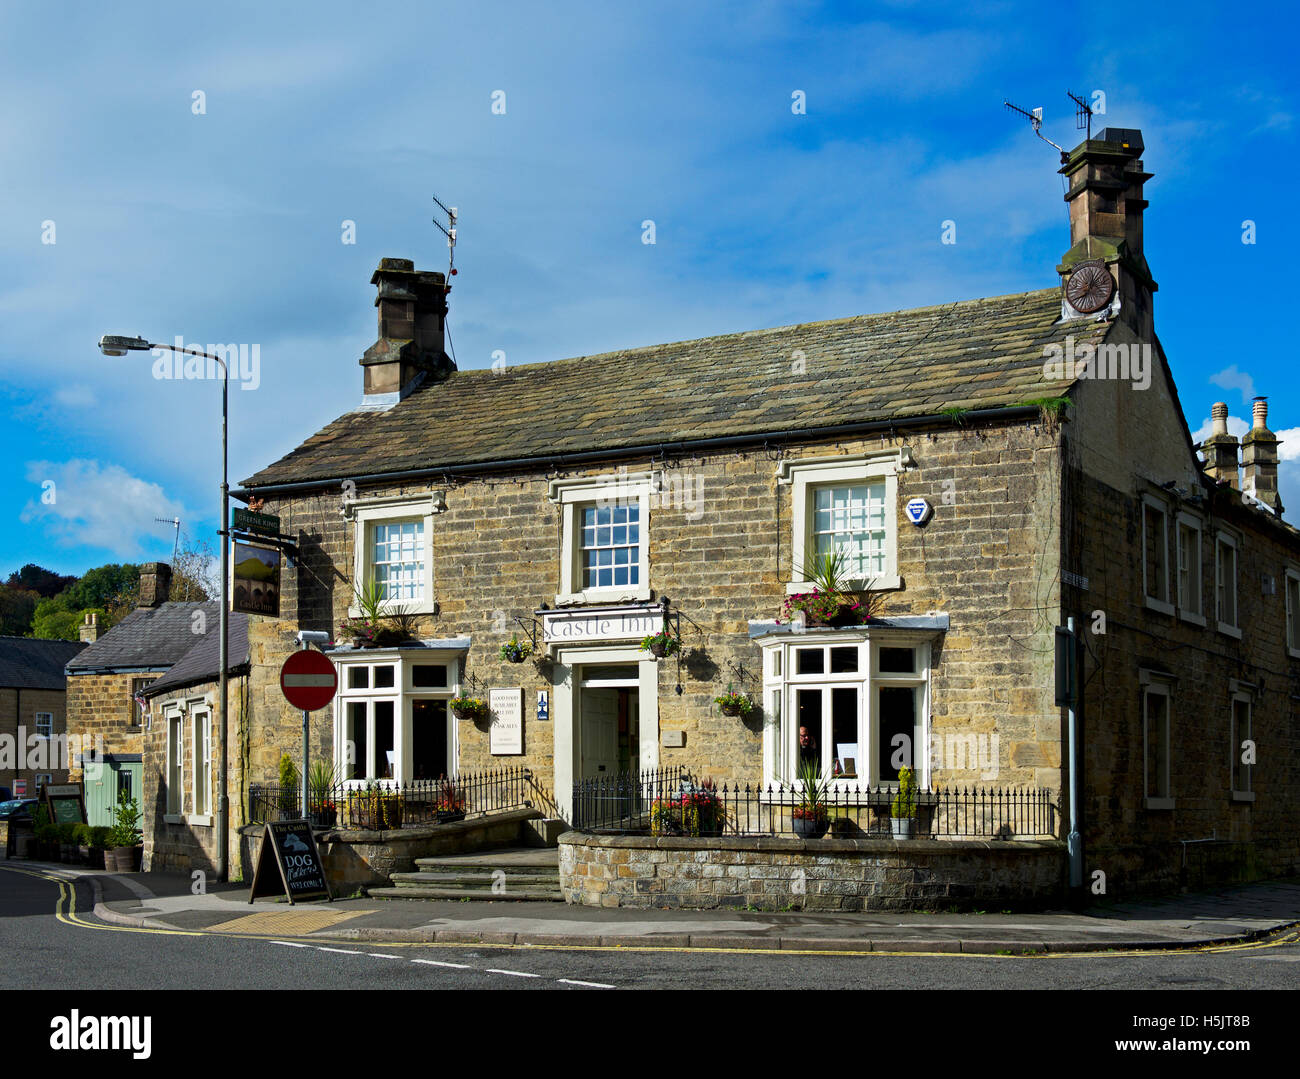 The Castle Inn, Bakewell, Derbyshire, England UK - Stock Image